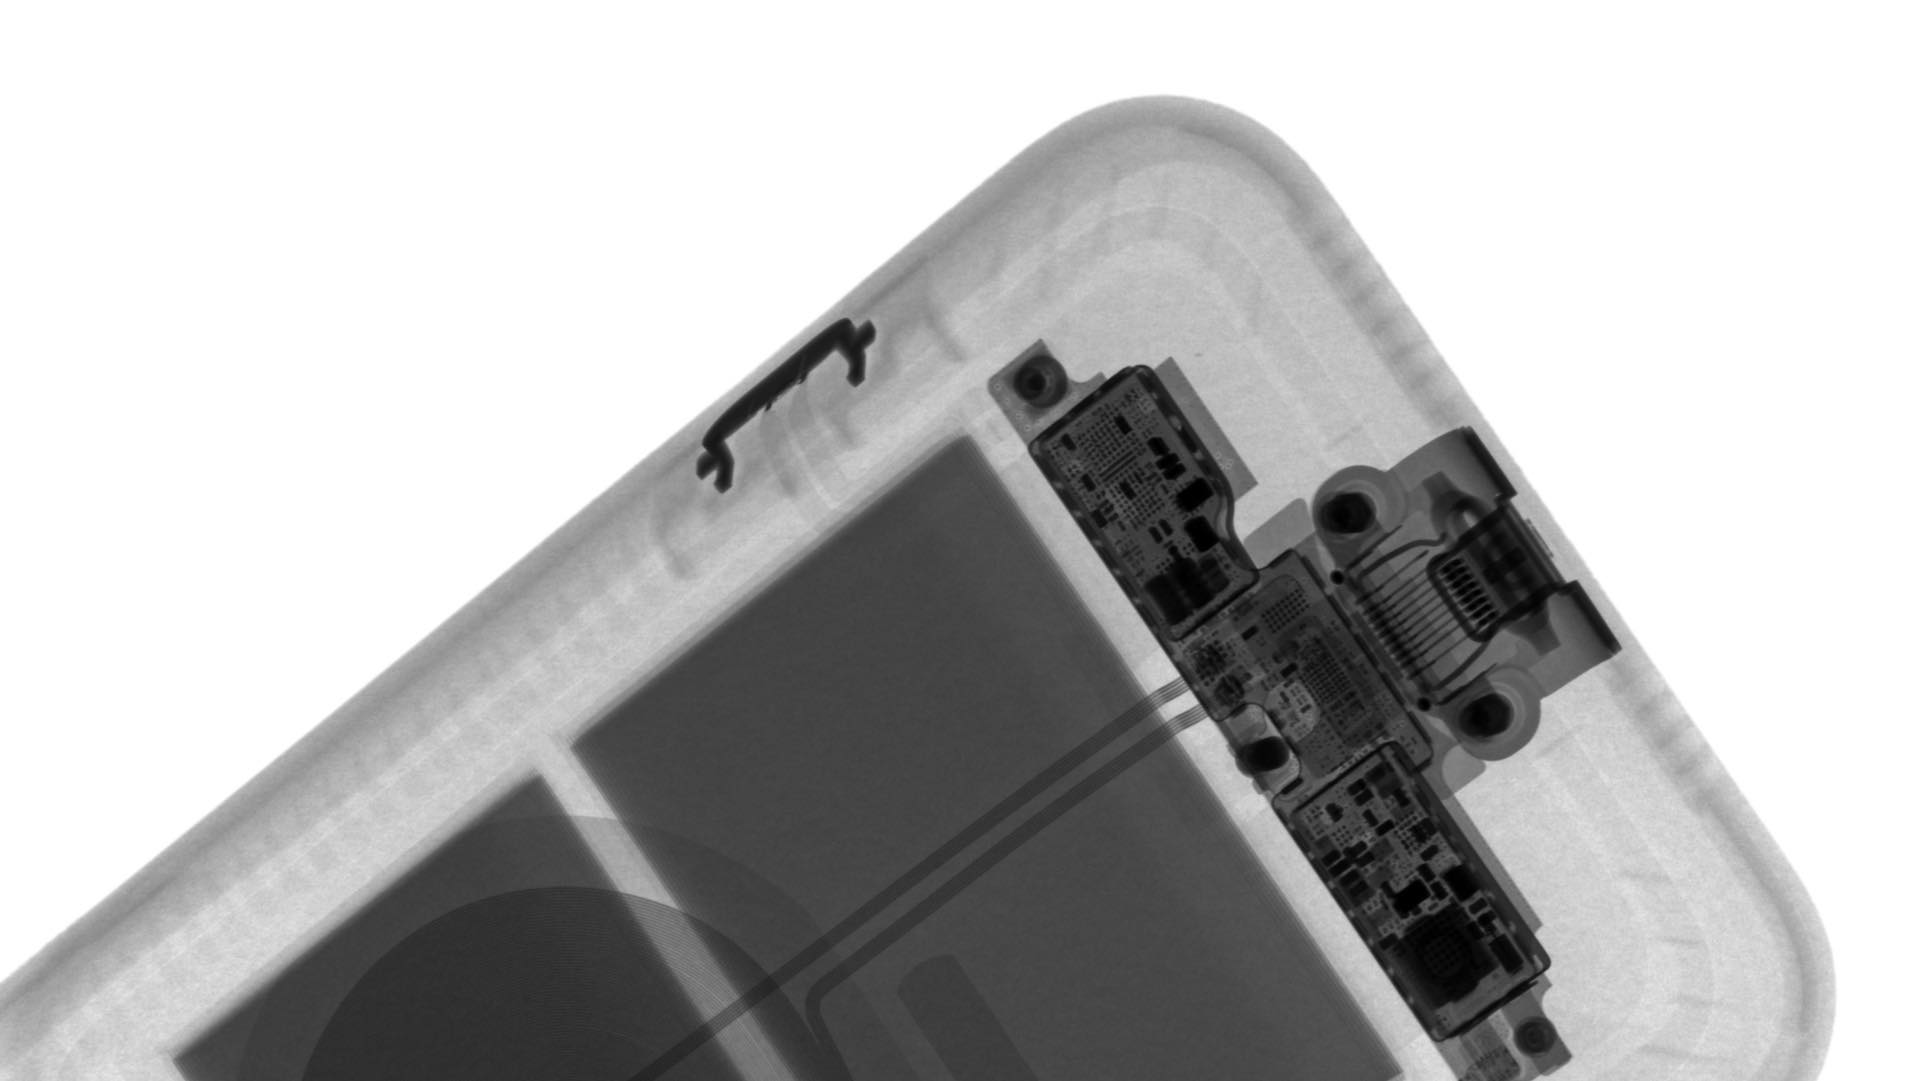 iFixit X-Ray Teardown of New iPhone 11 Smart Battery Case Shows How The Camera Button Works